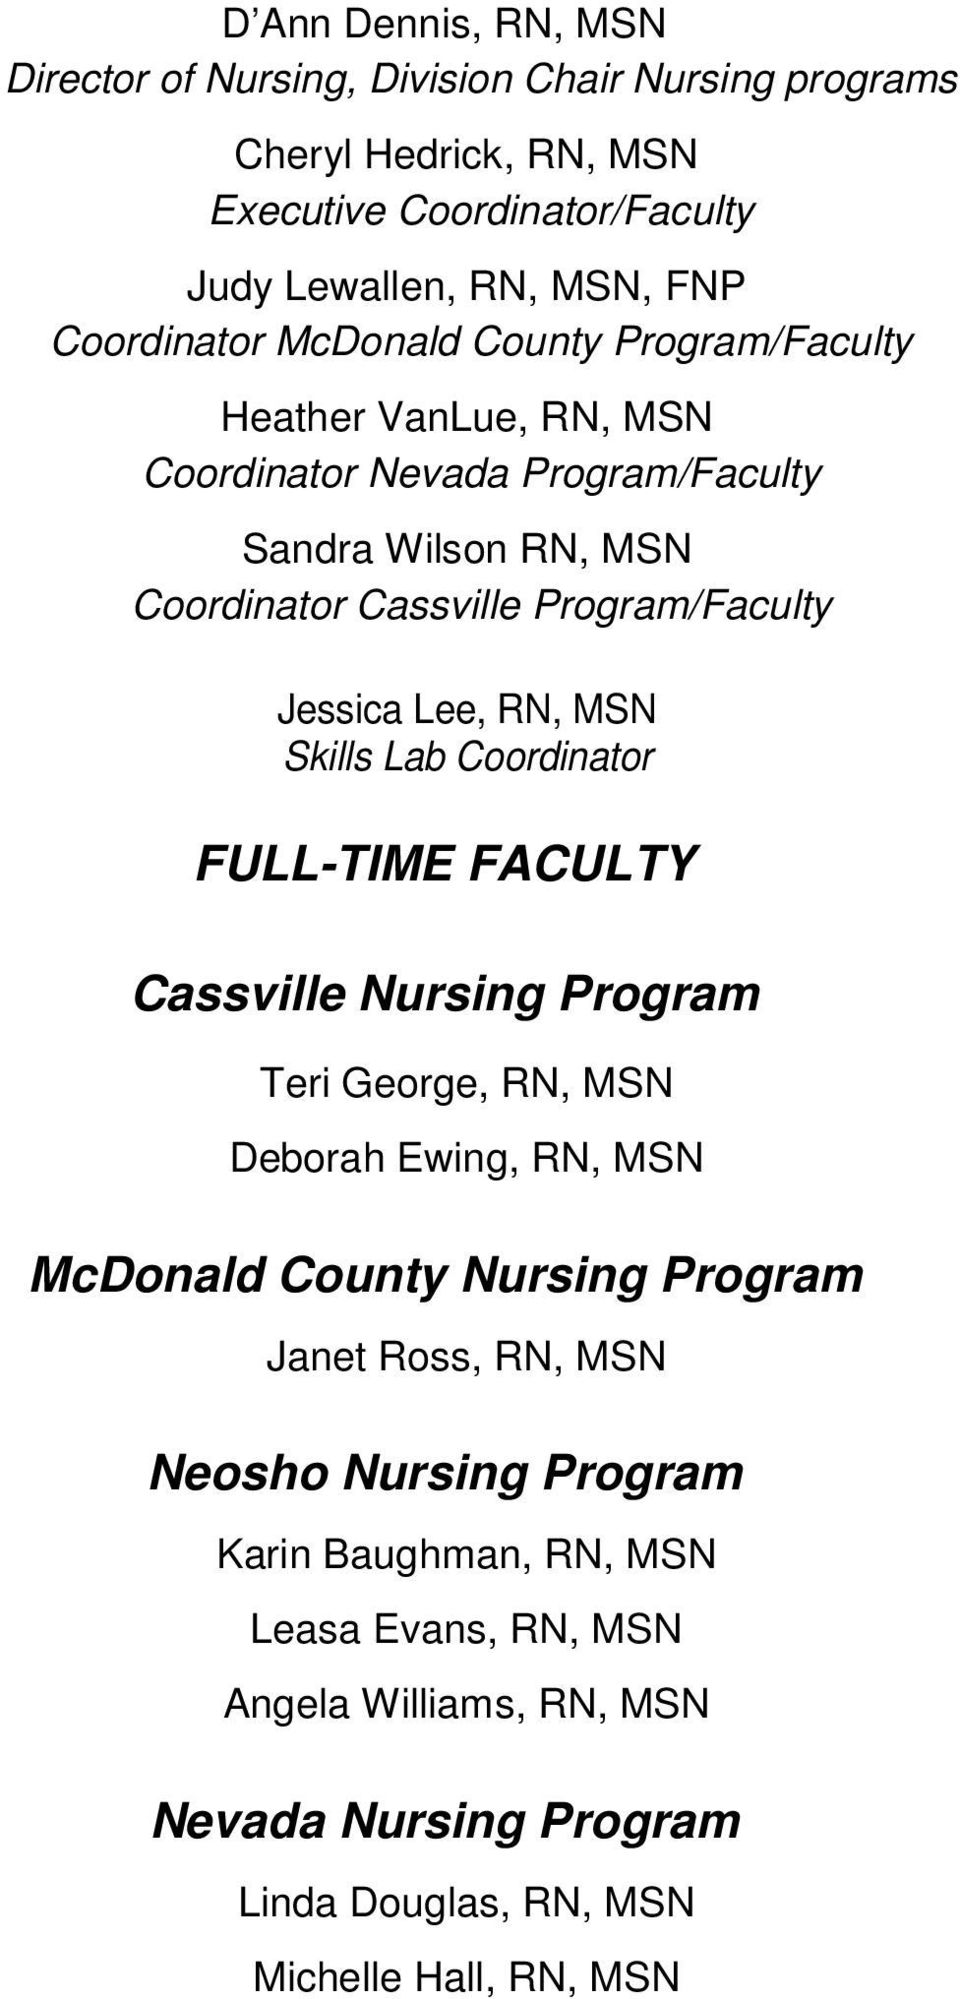 Jessica Lee, RN, MSN Skills Lab Coordinator FULL-TIME FACULTY Cassville Nursing Program Teri George, RN, MSN Deborah Ewing, RN, MSN McDonald County Nursing Program